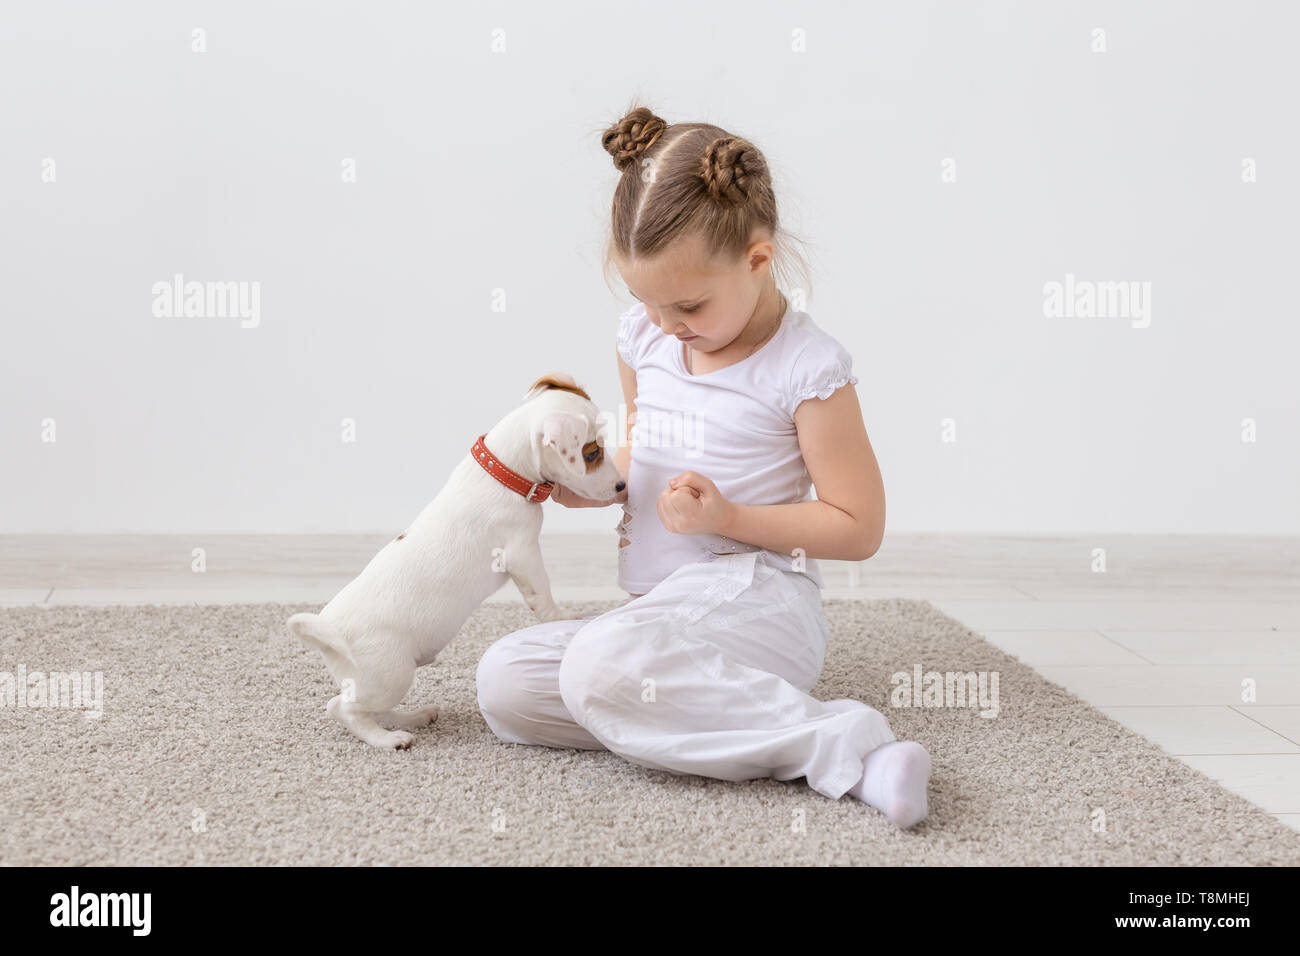 Pets and animal concept - Child girl playing with puppy Jack Russell Terrier - Stock Image